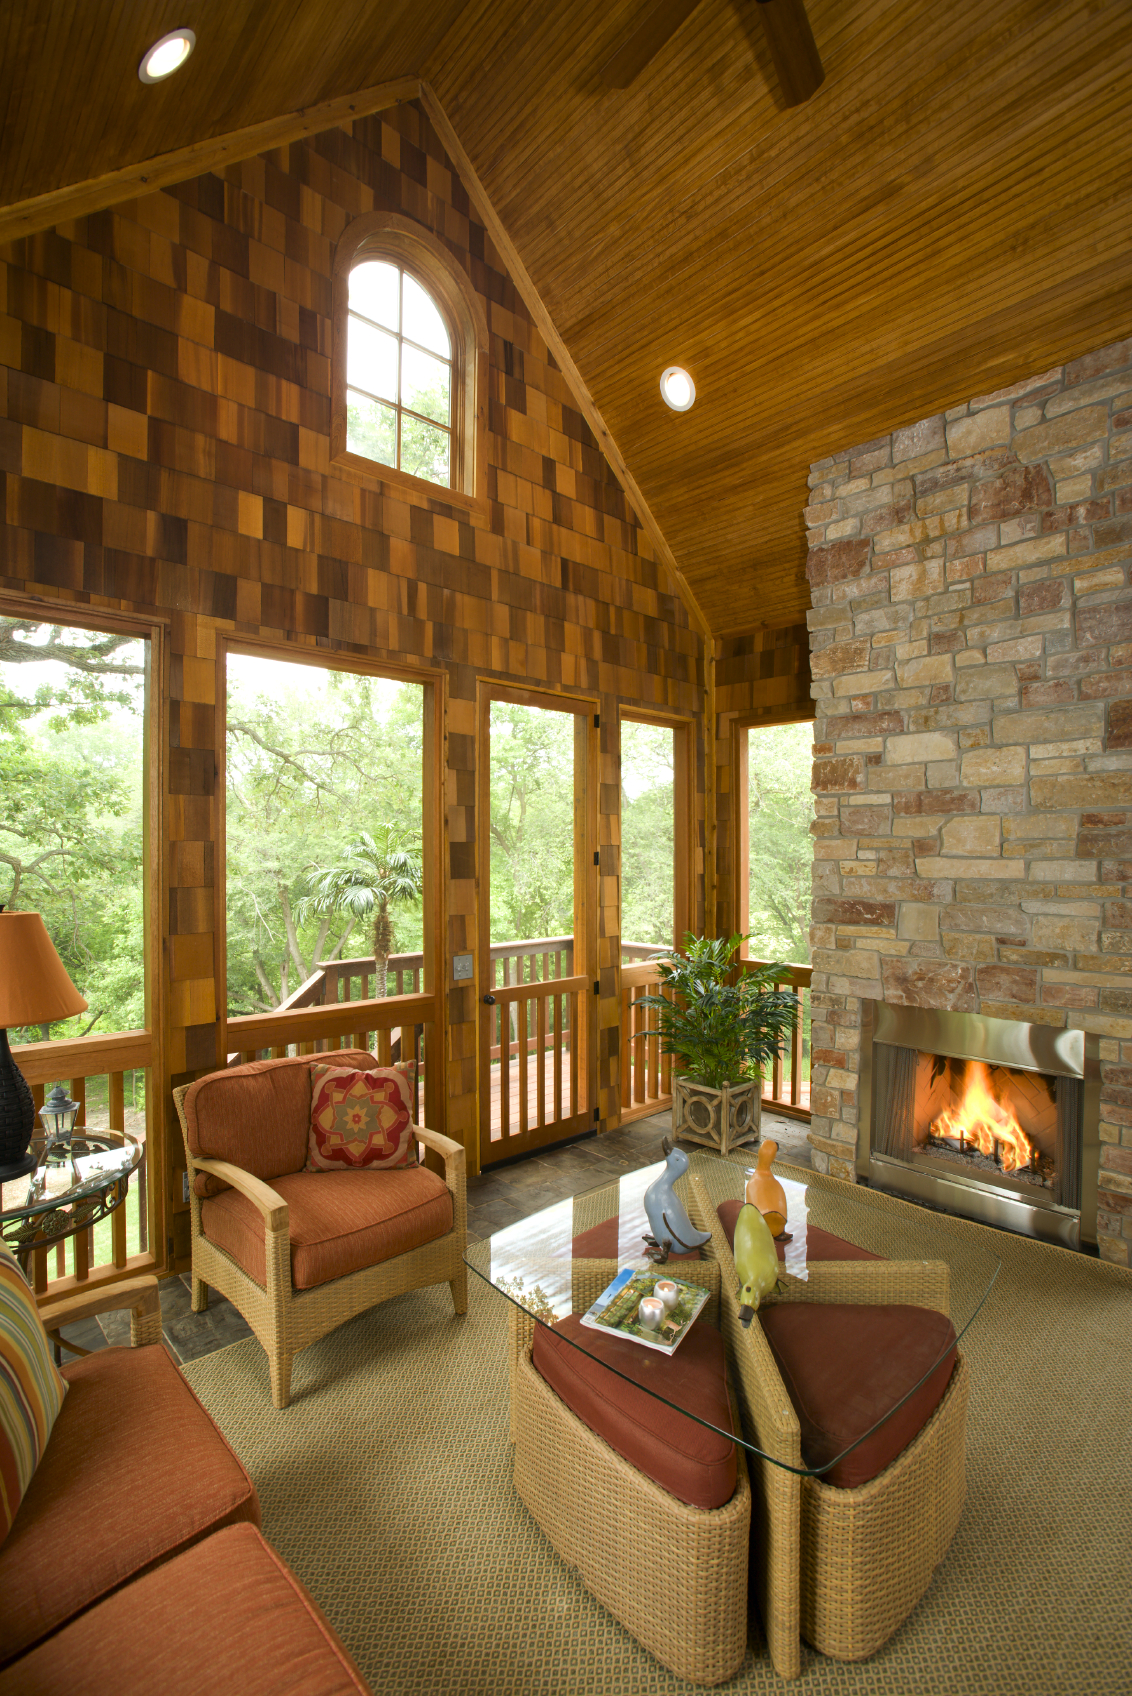 this porch is similar to a covered patio with windows and a fireplace